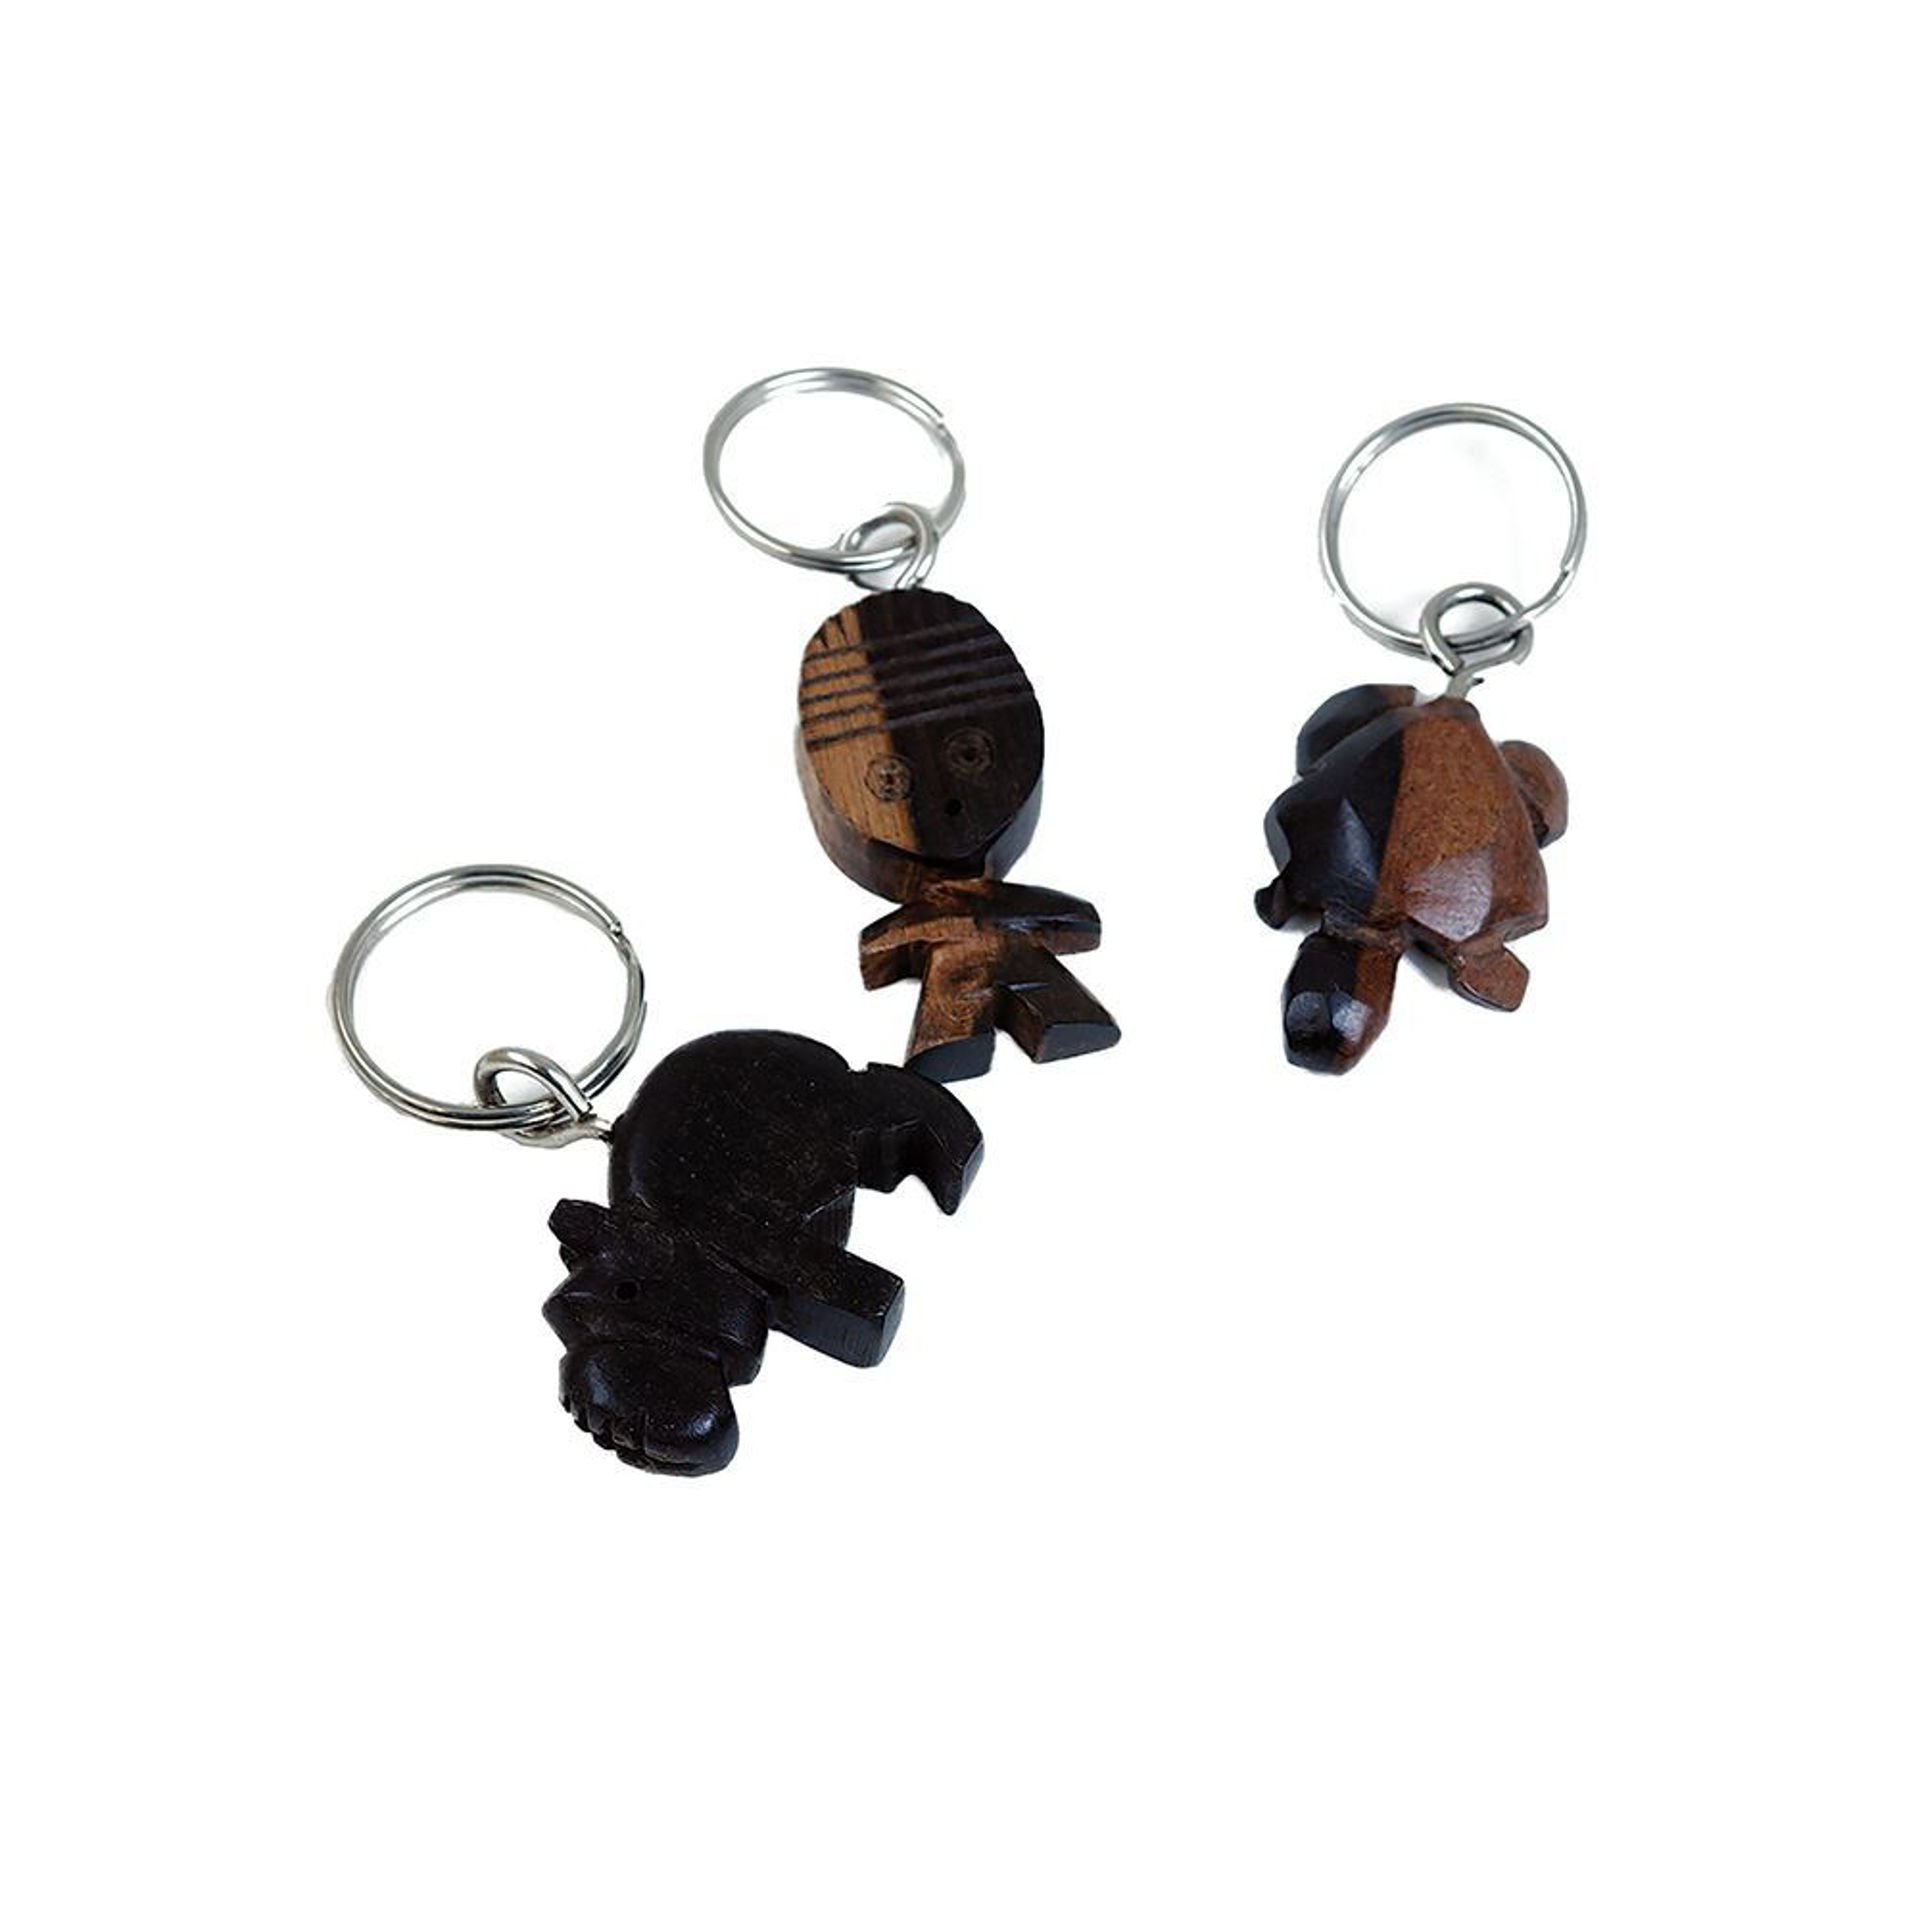 Picture of Wooden Animal & Mask Key Chain ASSORTED